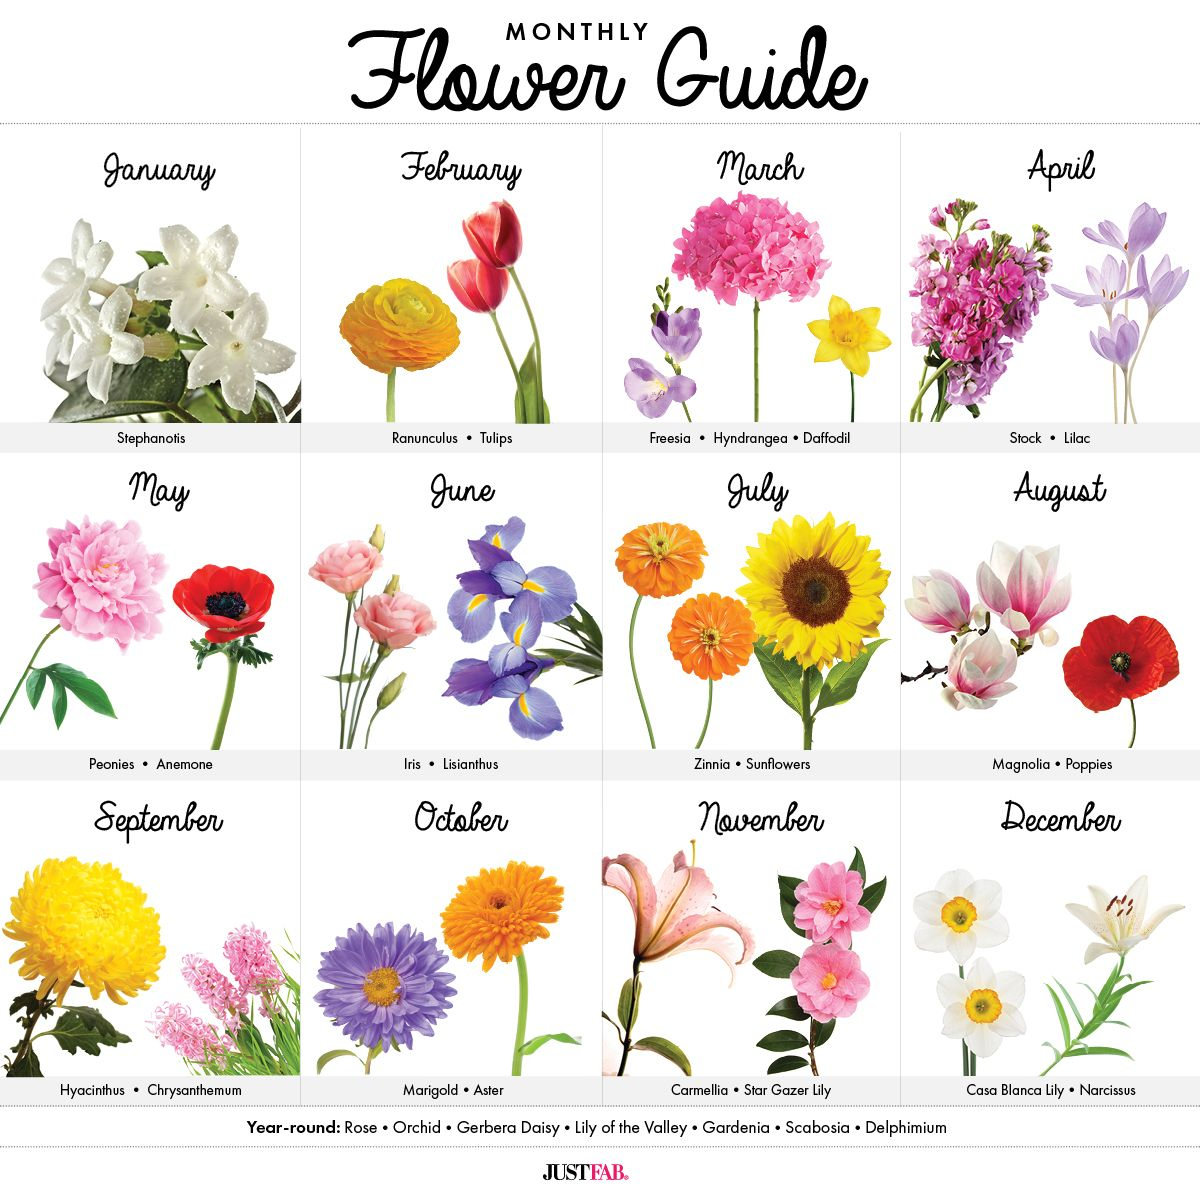 A Visual Guide to Wedding Flowers by Month Birth flowers